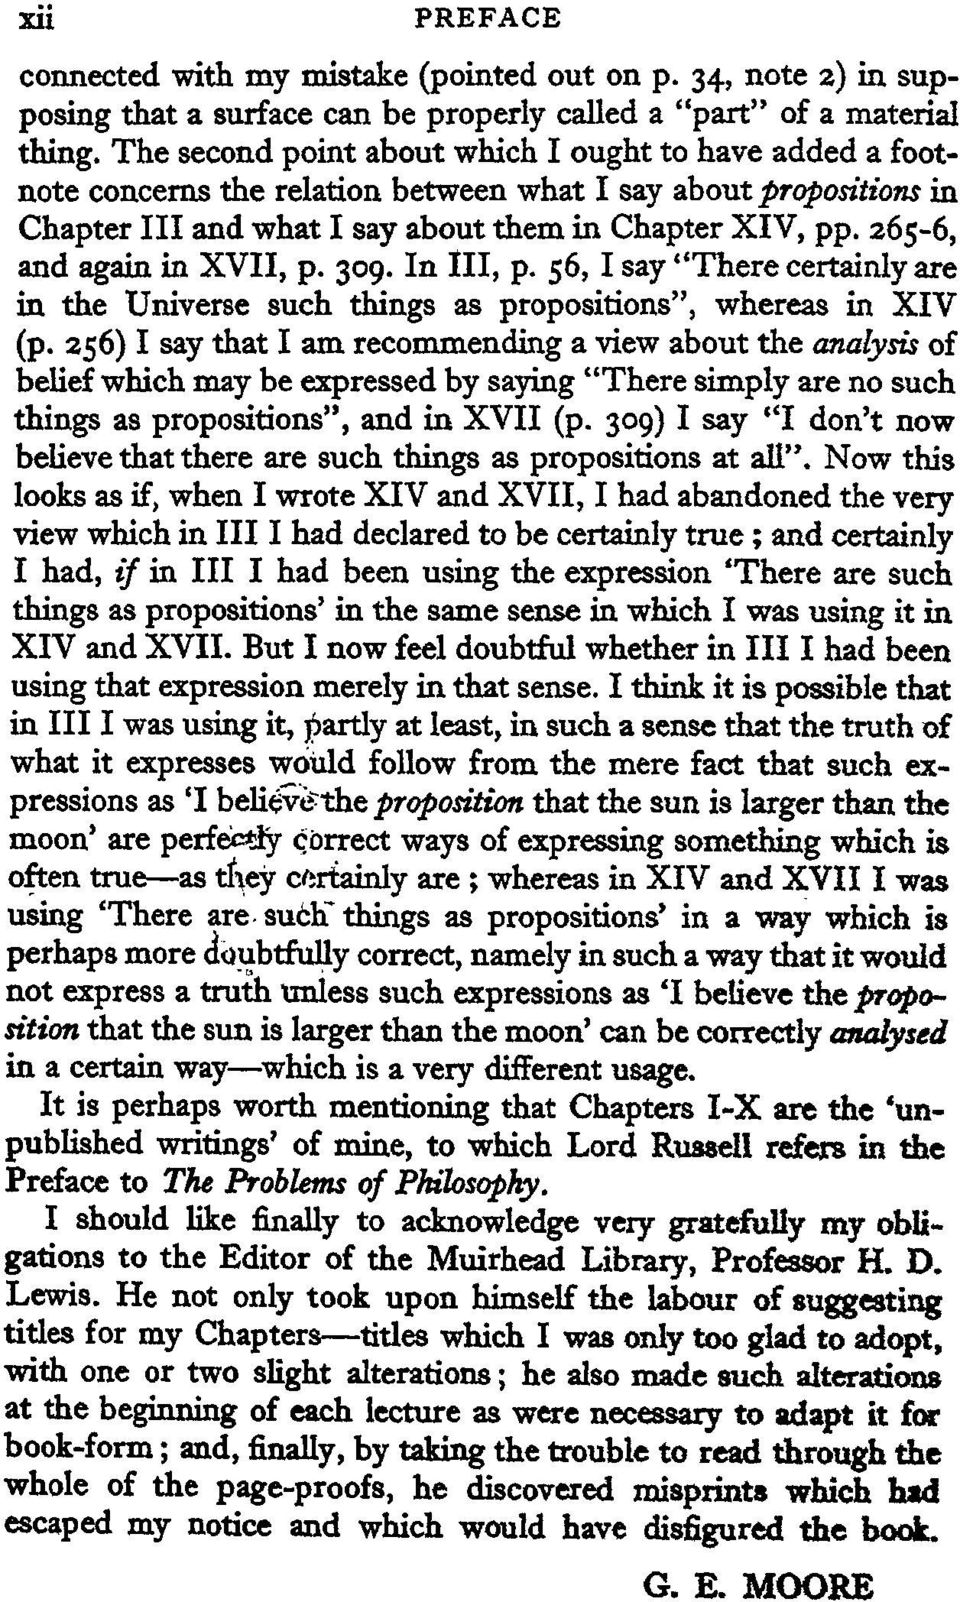 "265-6, and again in XVII, p. 309. In III, p. 56, 1 say ''There certainly are in the Universe such things as propositions"", whereas in XIV (p."